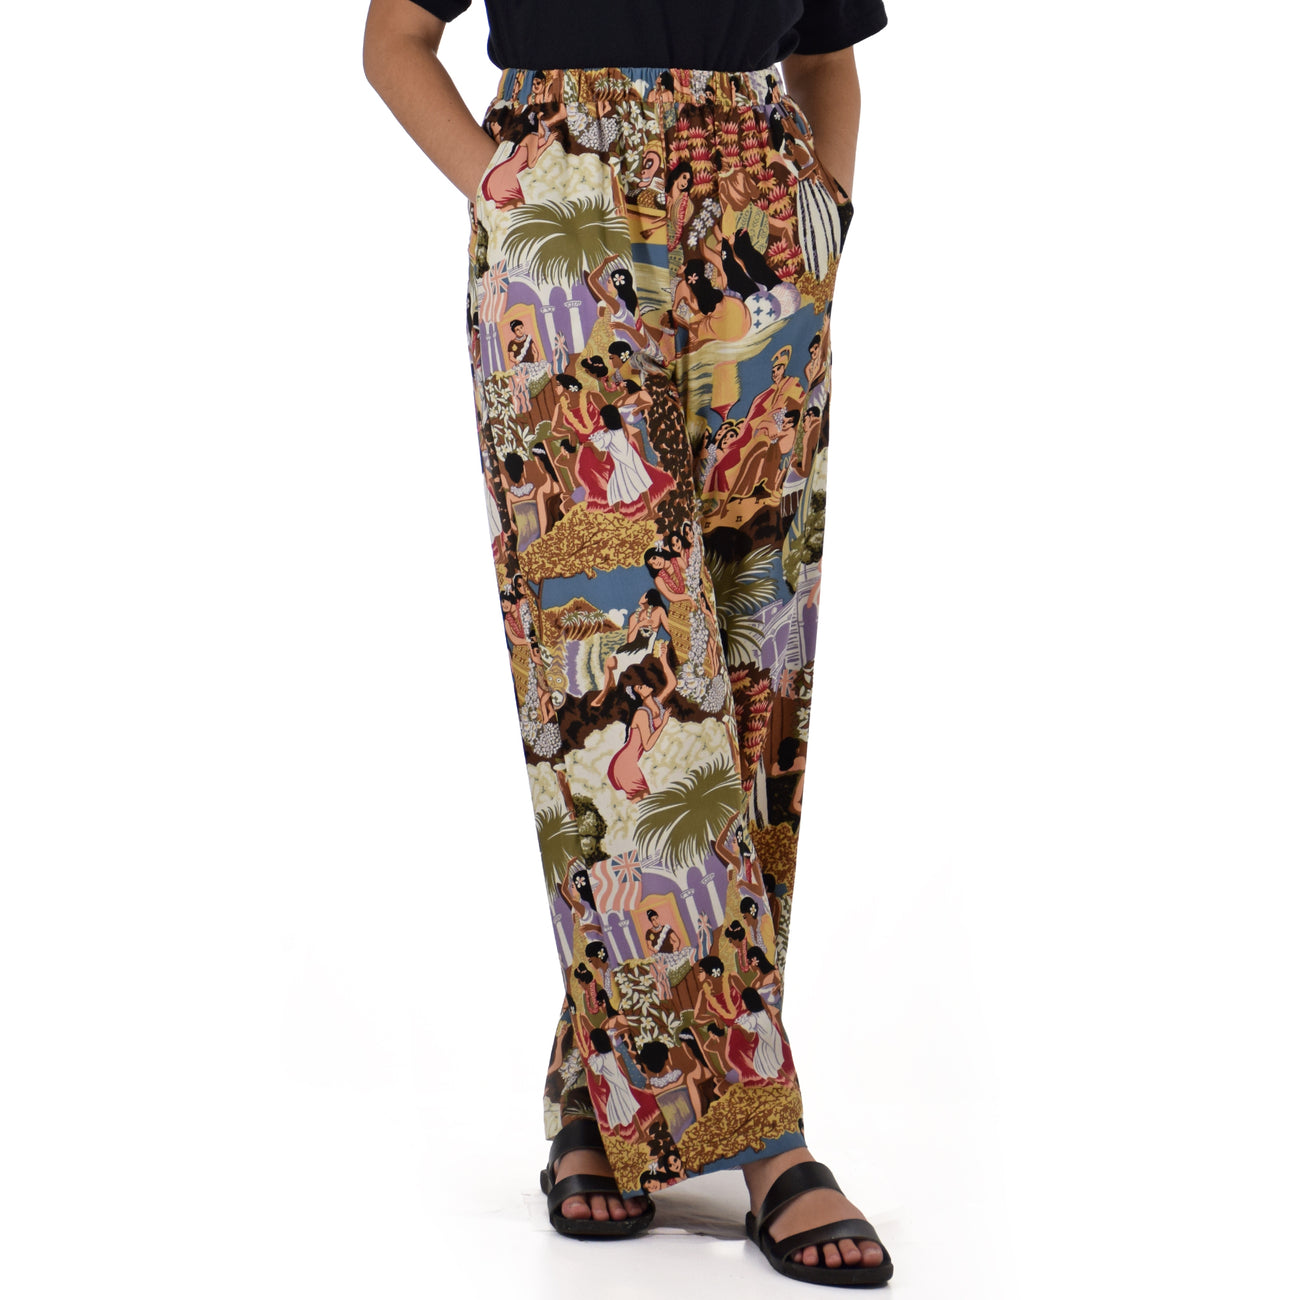 'IOLANI ELASTIC WAIST LONG PANT WITH POCKETS w/ Free 'IOLANI Mask